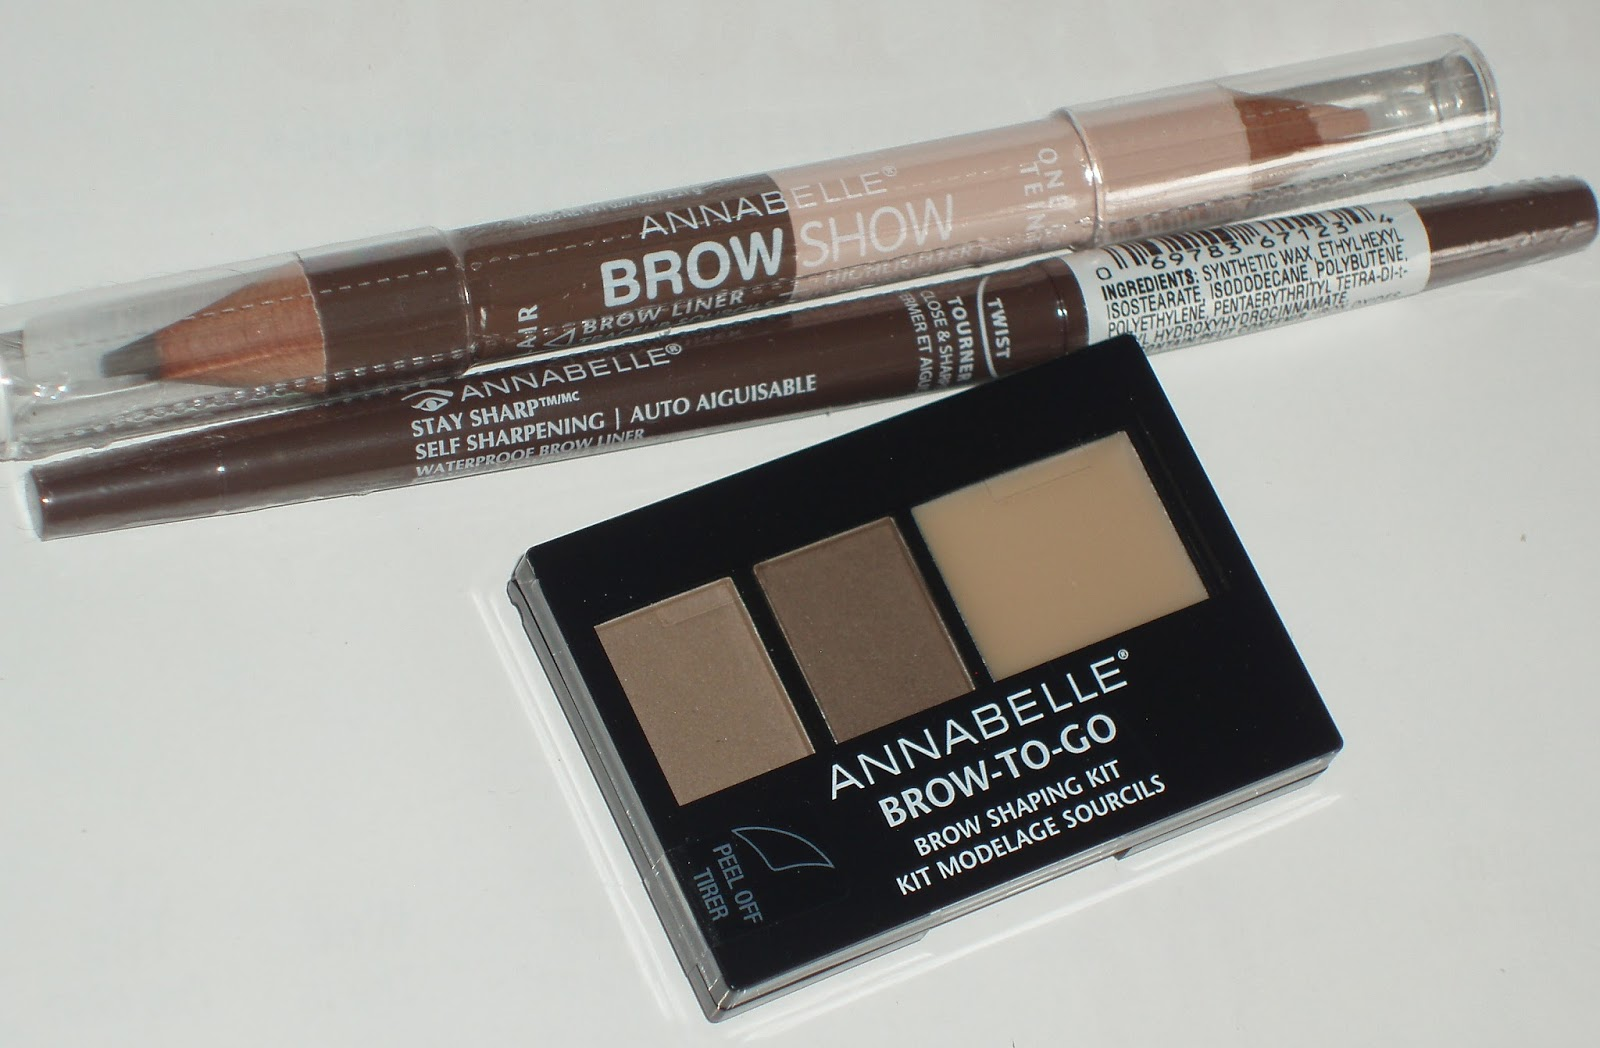 Sparkled Beauty: Annabelle Fall 2015 - Brows